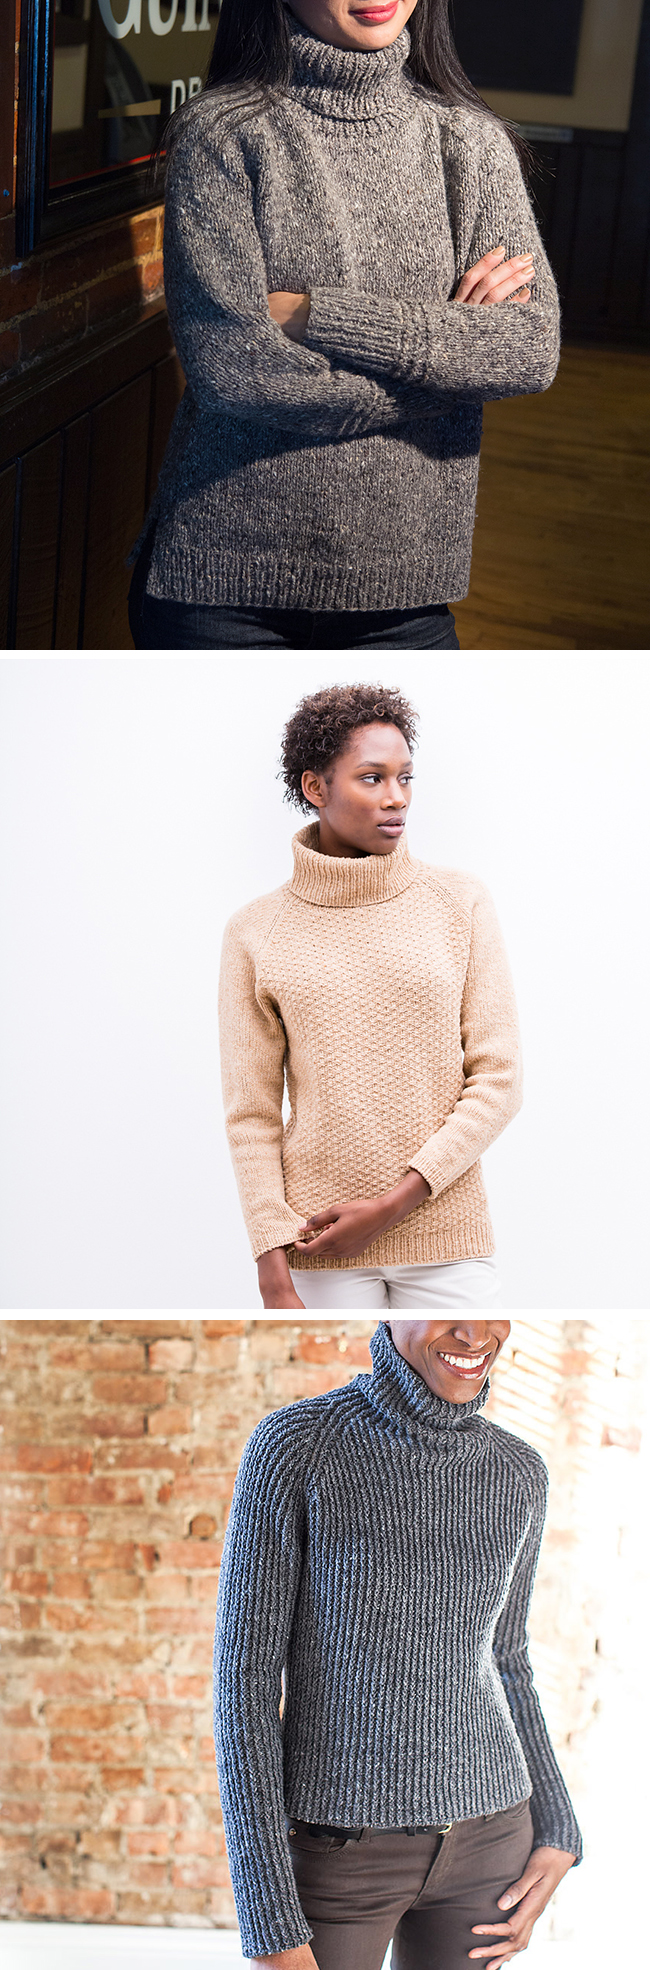 Make Your Own Basics: The turtleneck sweater